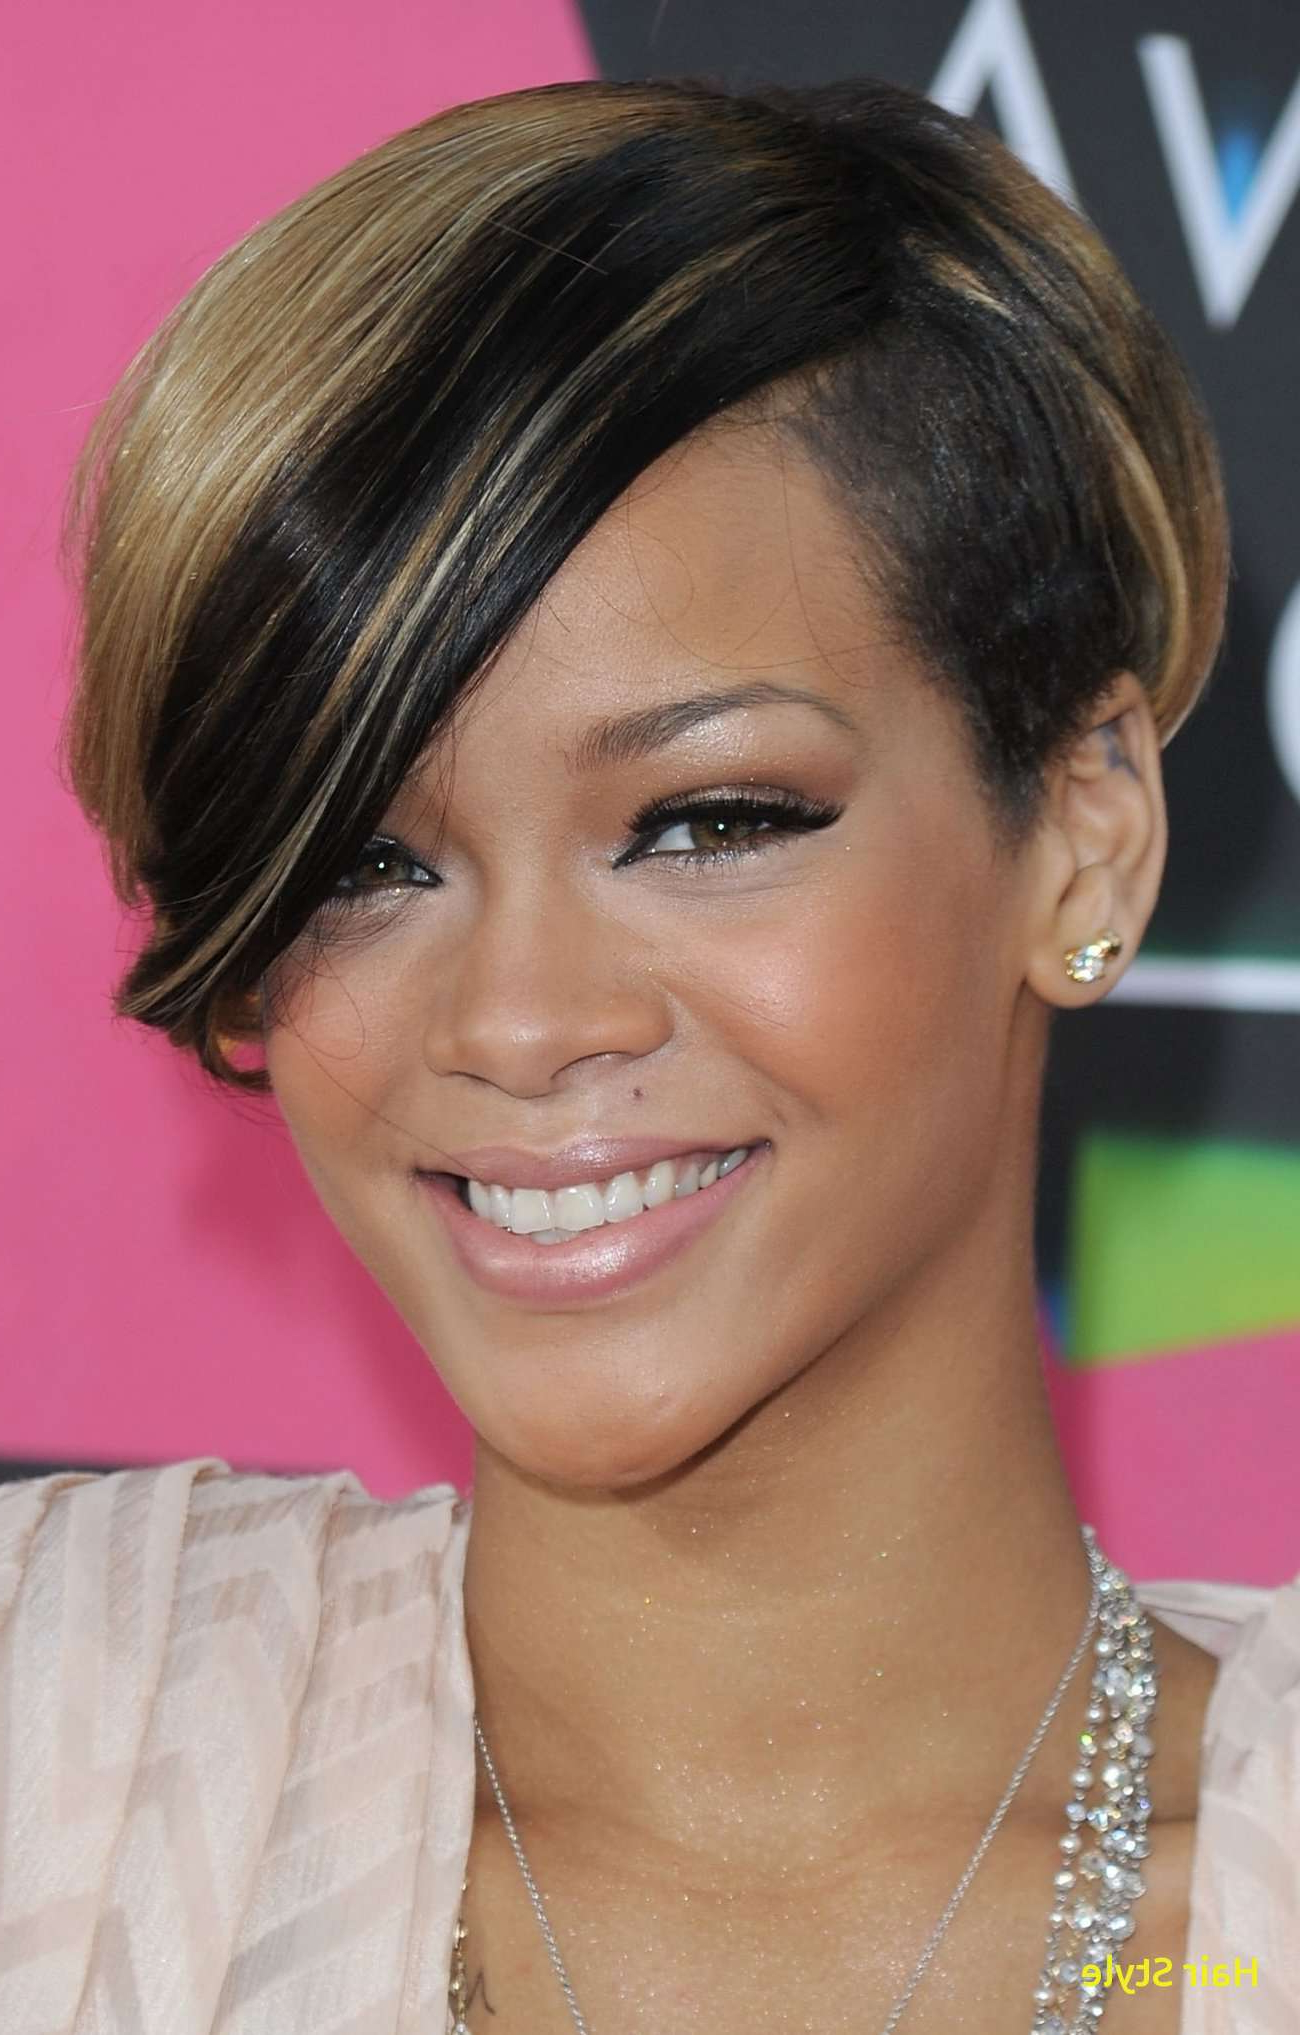 Short Haircuts For Oval Faces And Thin Hair Lovely Photo Short Pertaining To Short Haircuts For Black Women Round Face (View 23 of 25)